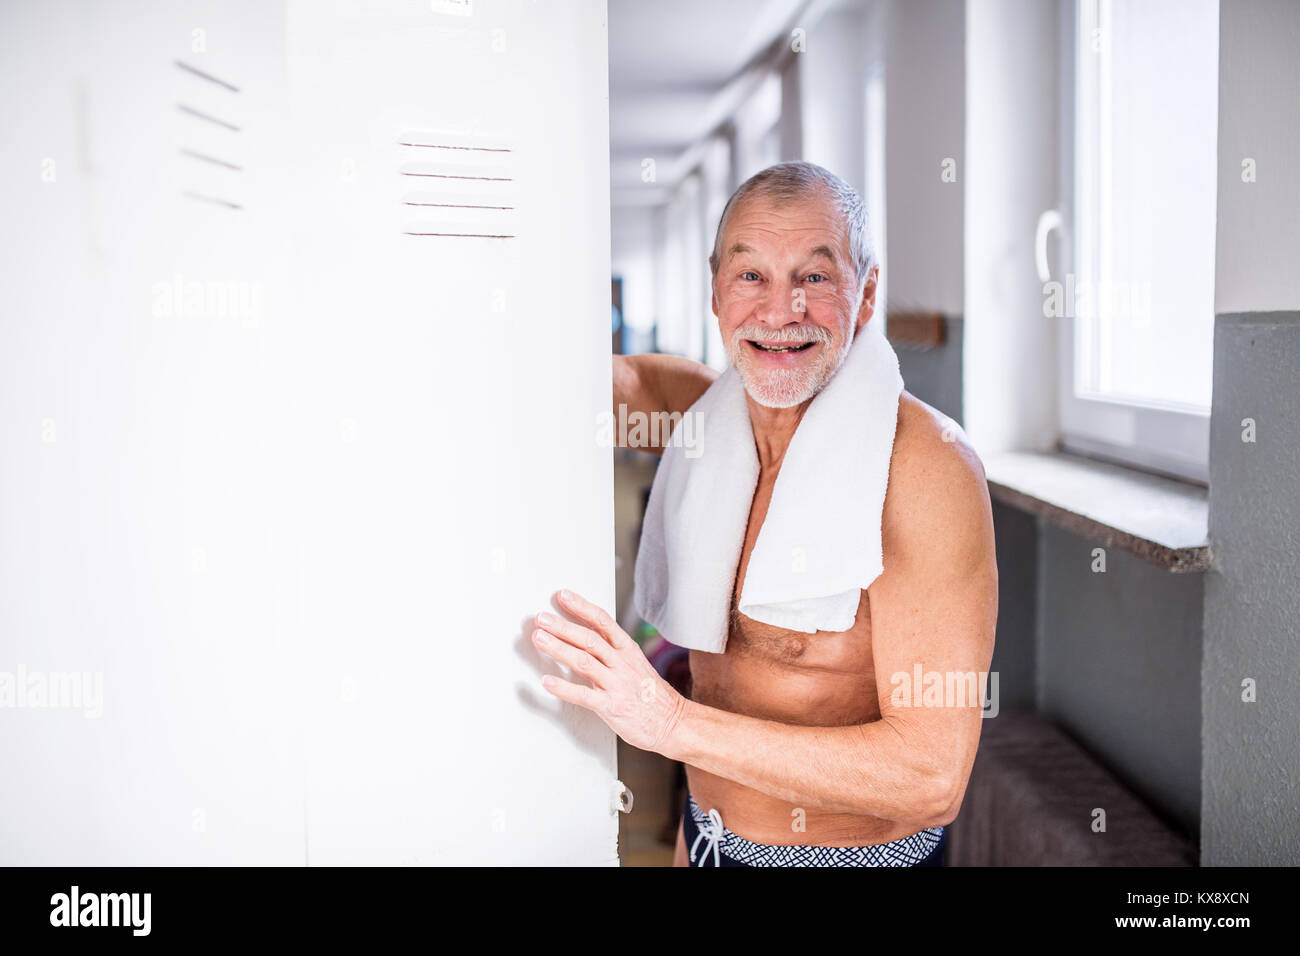 Senior man standing by the lockers in an indoor swimming pool. - Stock Image